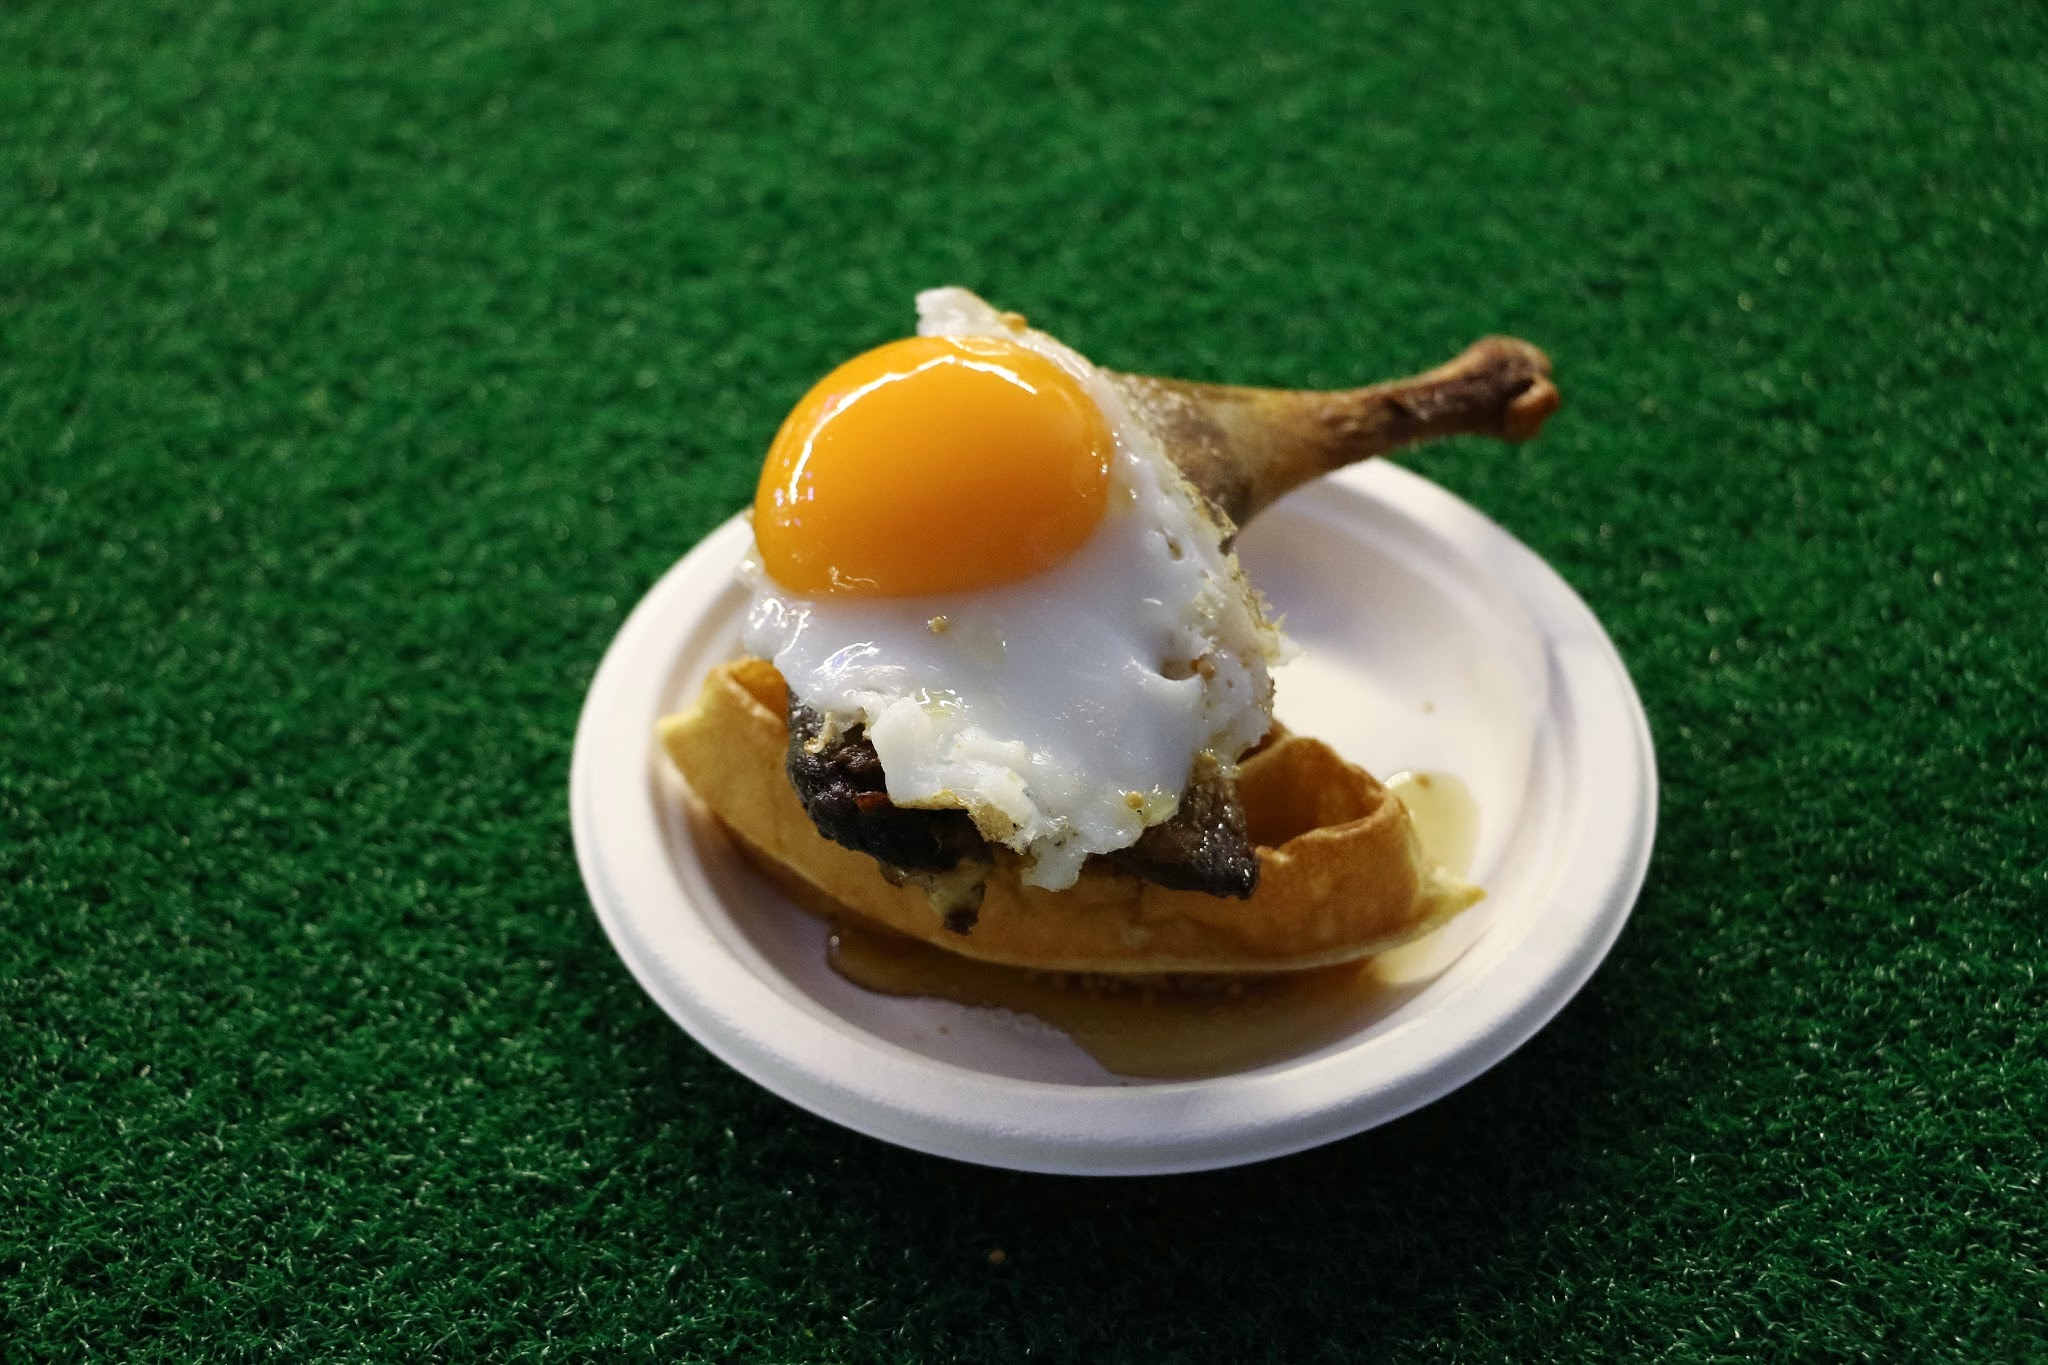 Taste Festival, Taste of Hong Kong, Duck & Waffle Crispy leg confit, fried duck egg, mustard maple syrup